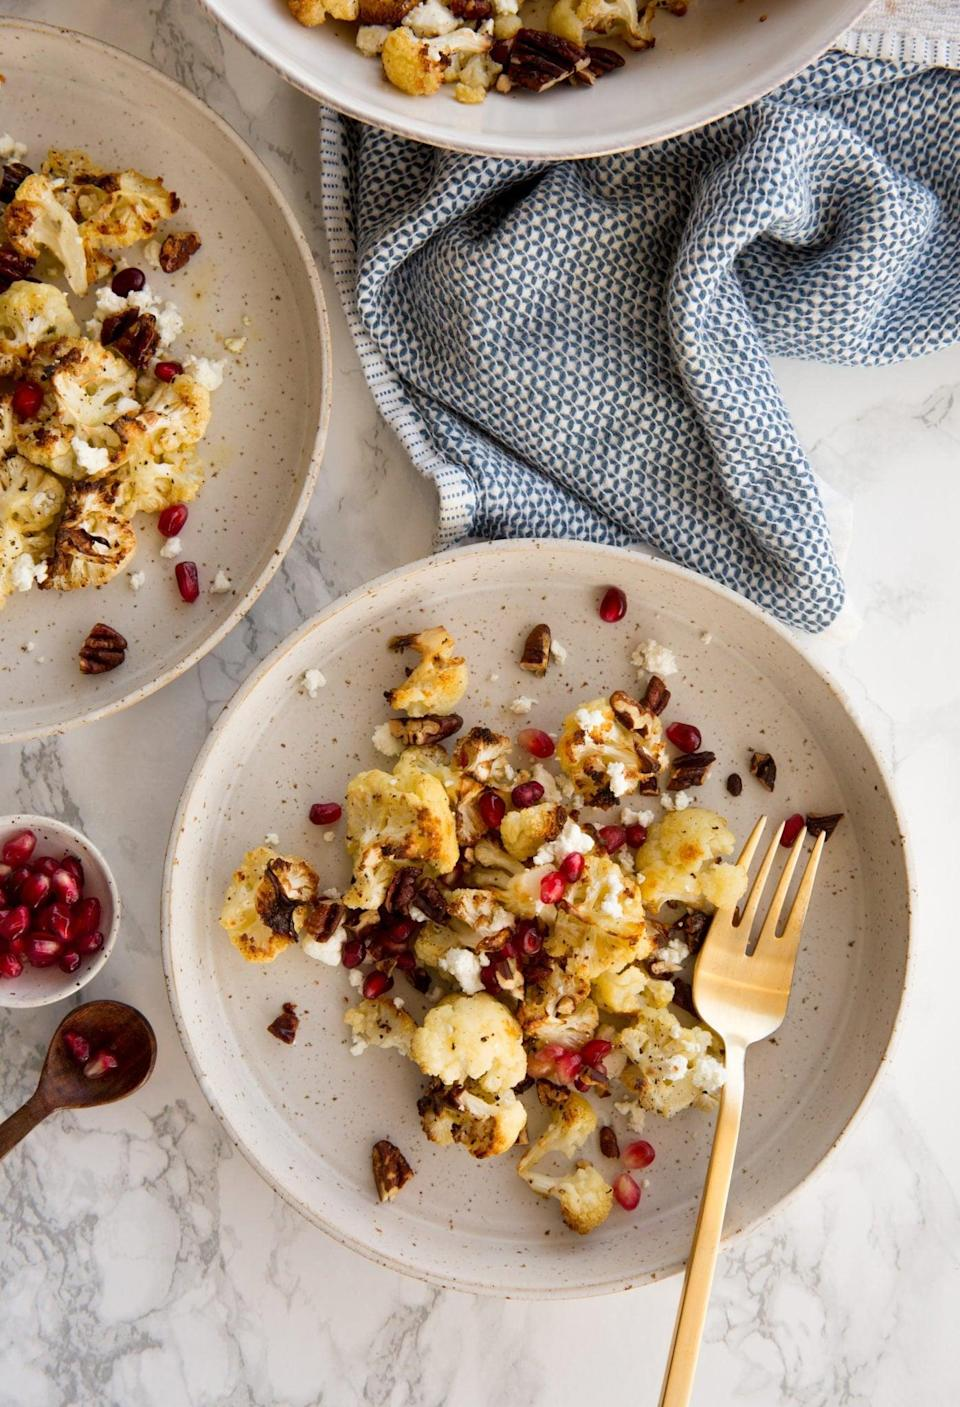 <p>This gluten-free vegetarian dish is a versatile side for any Thanksgiving table, even if there are just two of you. The tasty recipe combines cauliflower, goat cheese, and pomegranates. The original recipe makes four servings, so cut it in half for two people. </p><p><strong>Get the recipe:</strong> <span>winter roasted cauliflower with goat cheese</span></p>